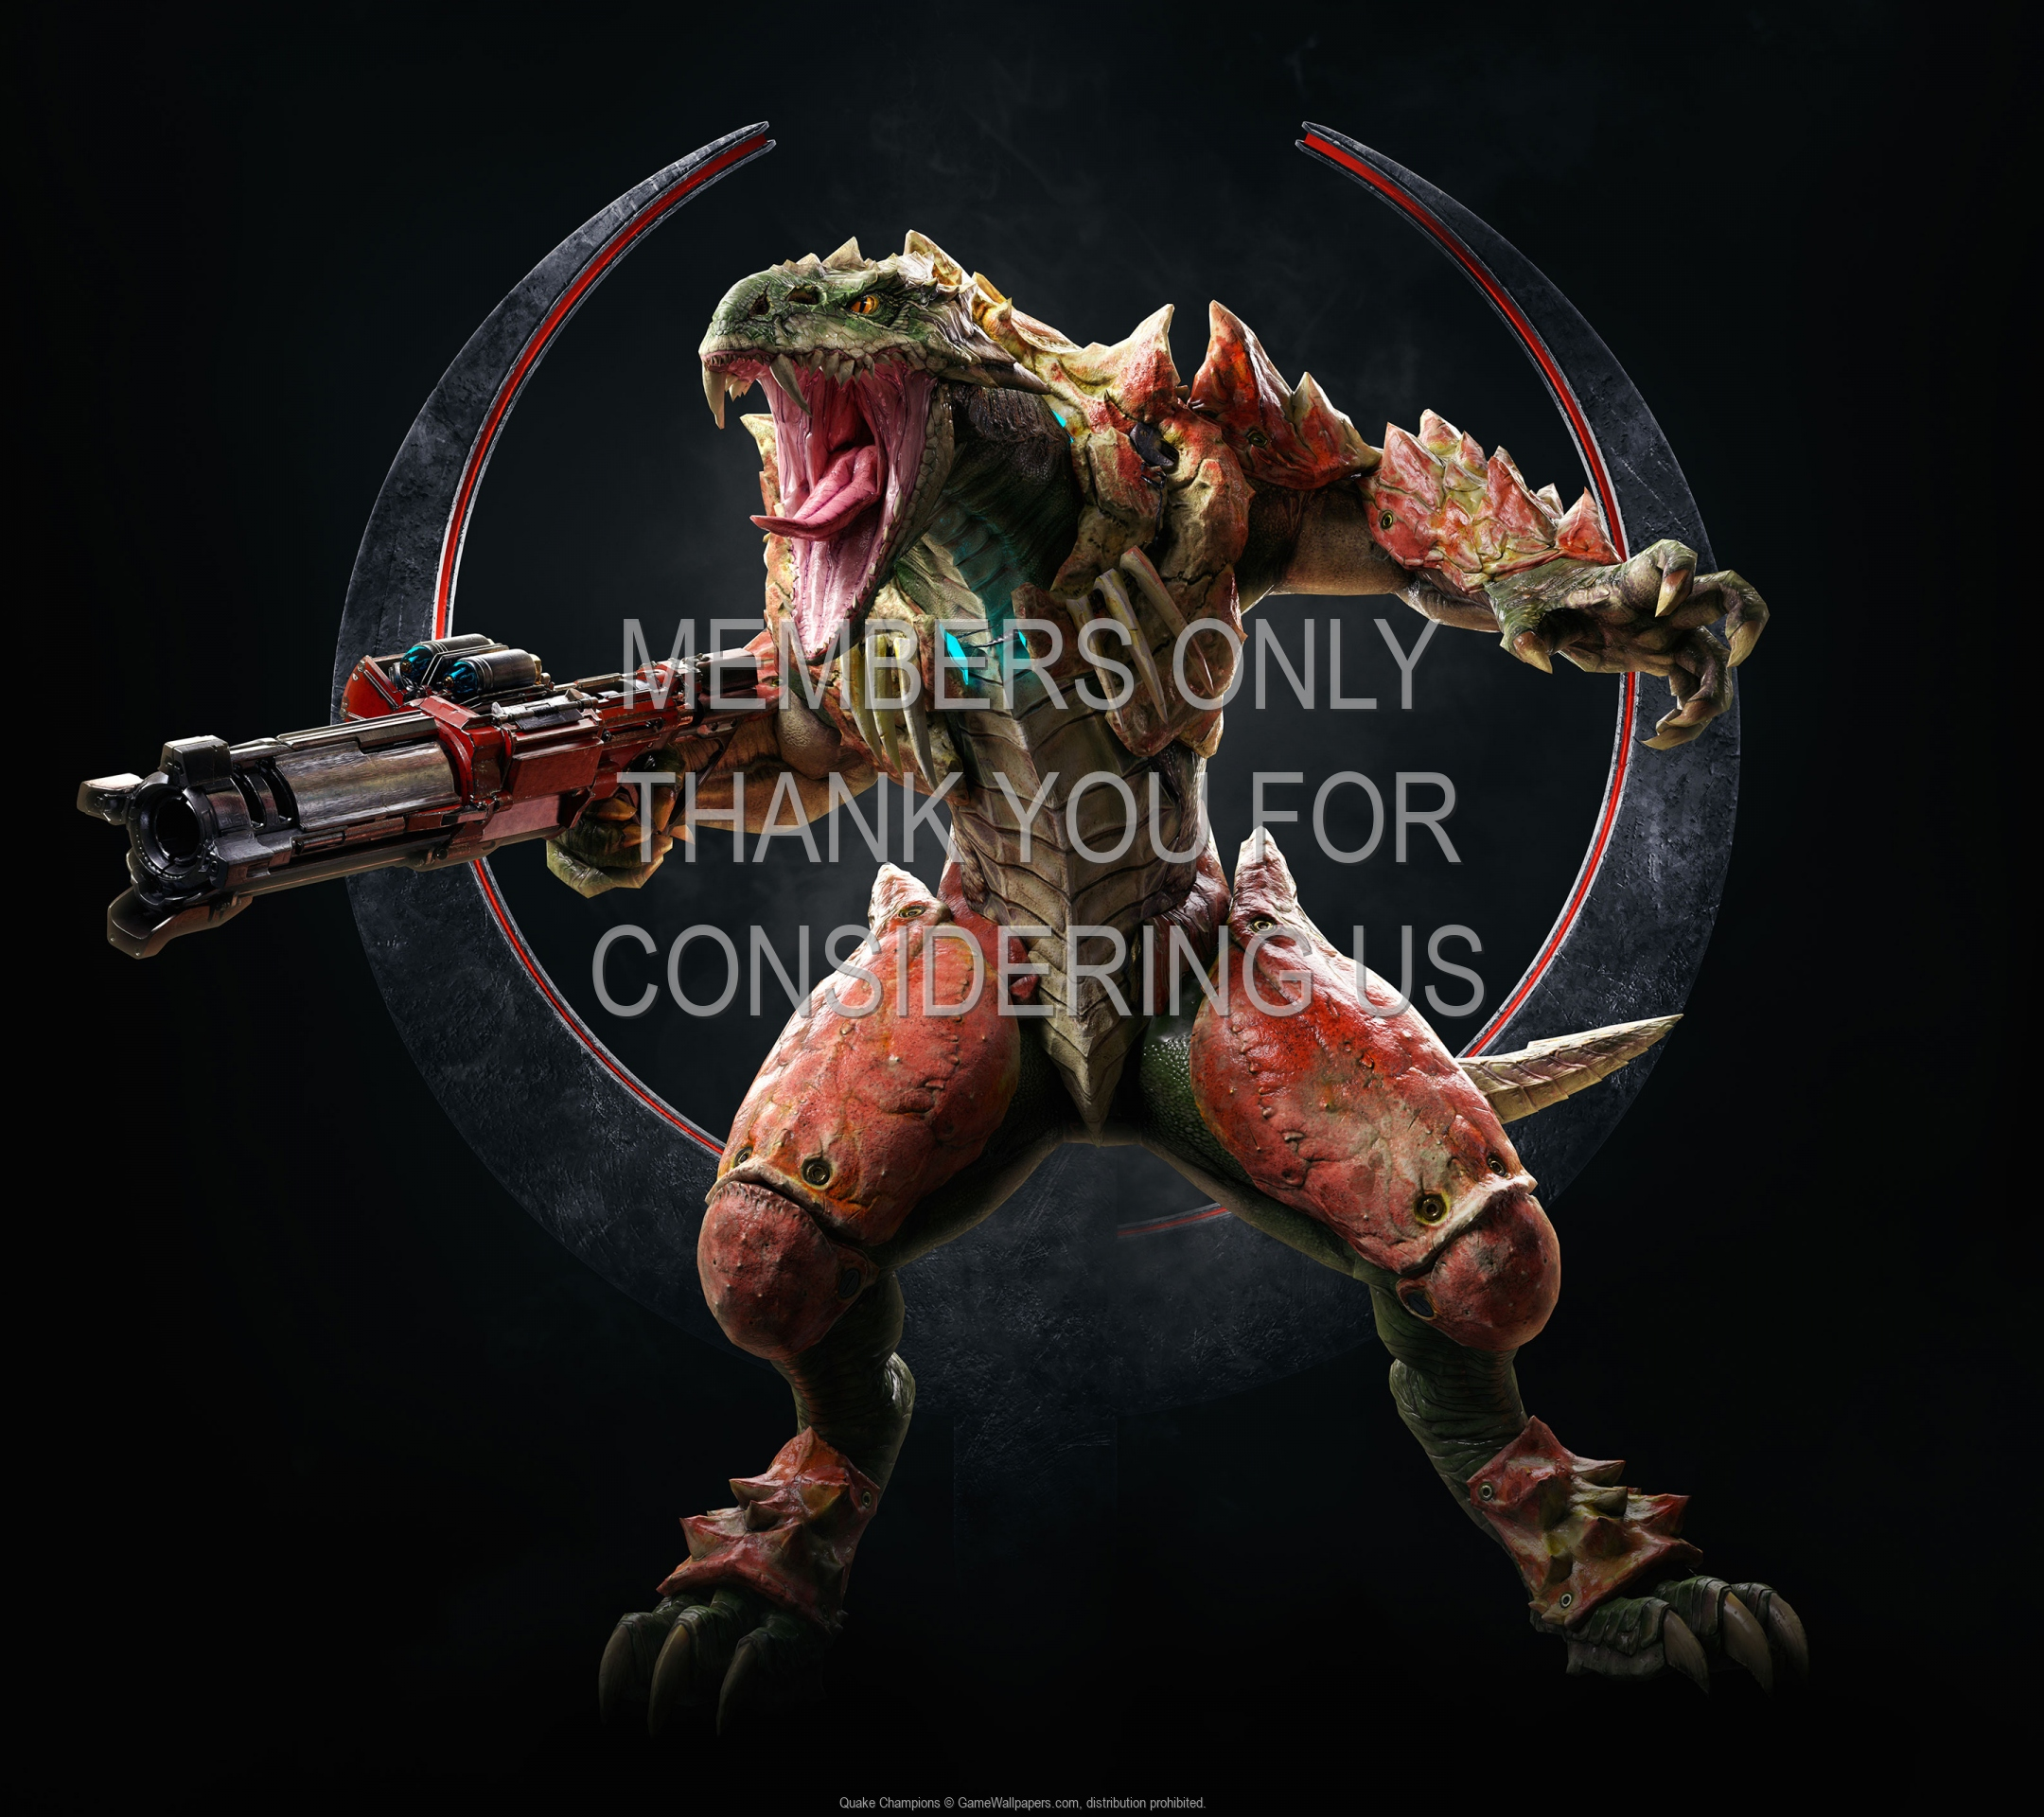 Quake Champions 1920x1080 Mobile wallpaper or background 05